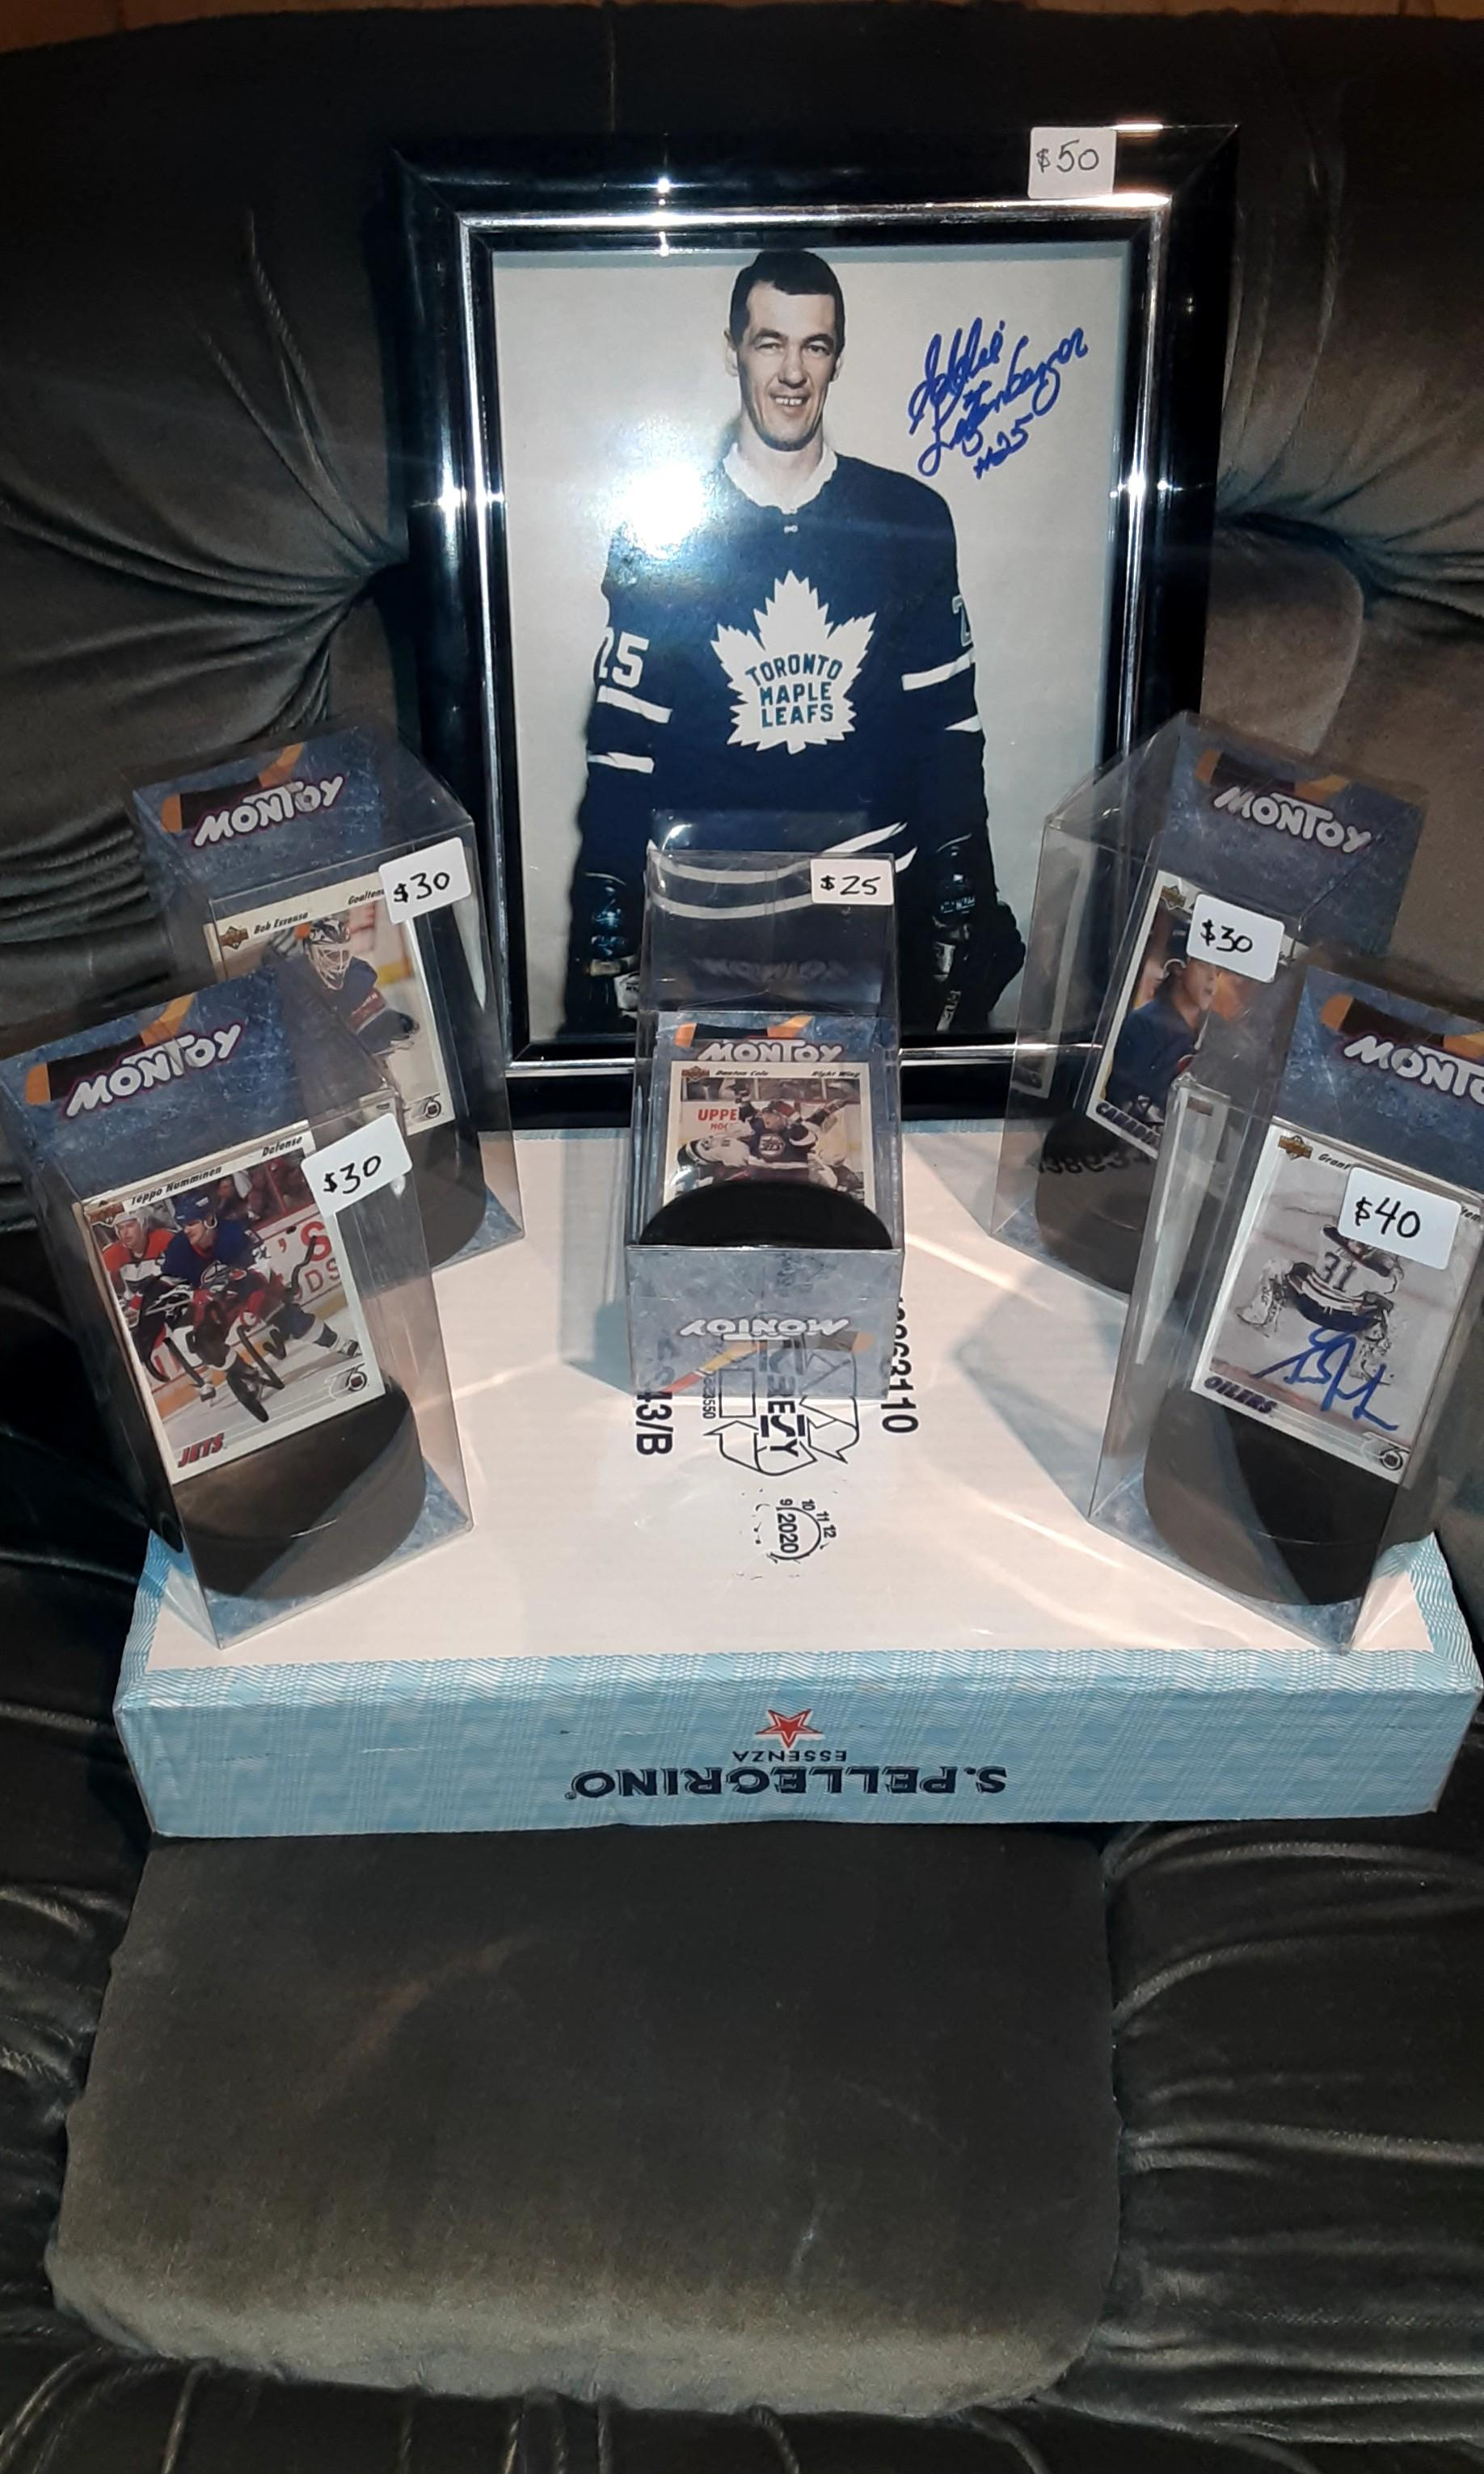 Quick sport gift ideas, autograph cards, specialty cards